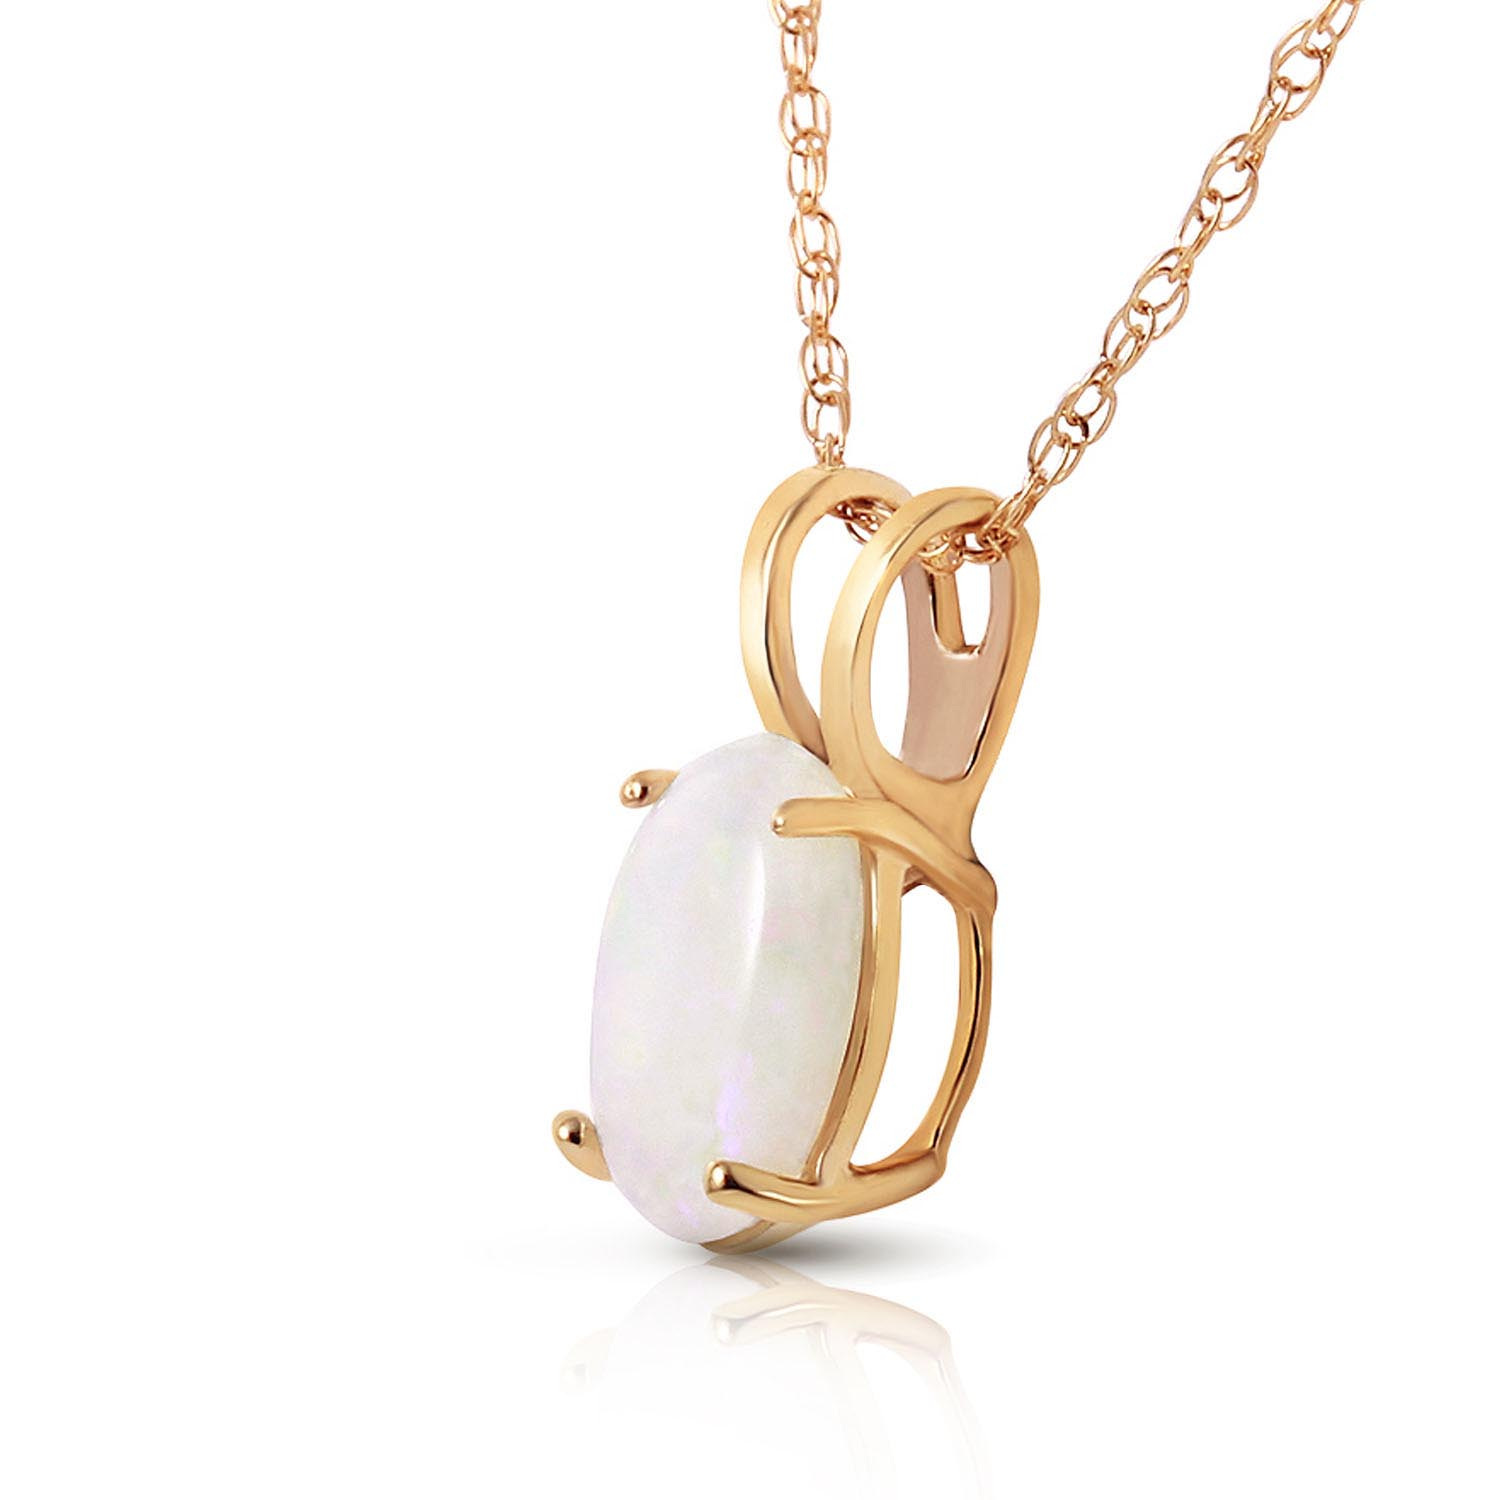 Oval Cut Opal Pendant Necklace 0.45ct in 9ct Gold